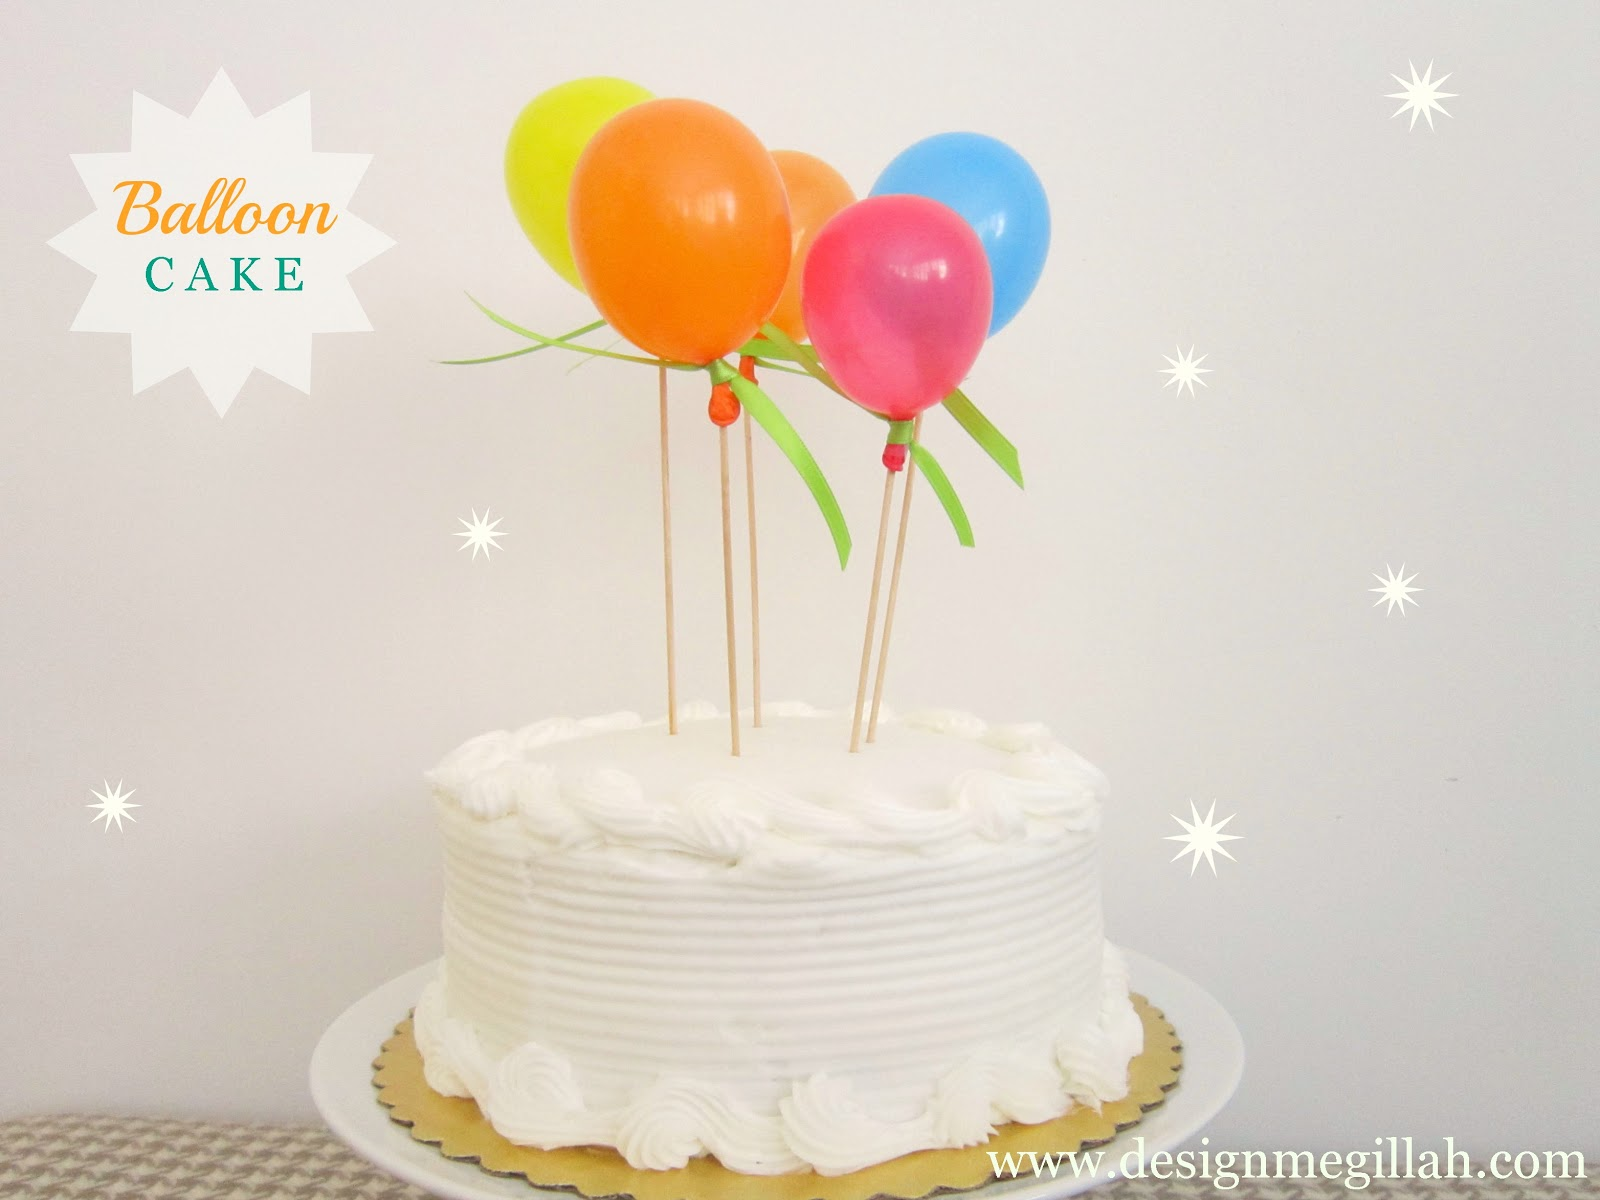 How To Decorate A Small Birthday Cake With Balloons